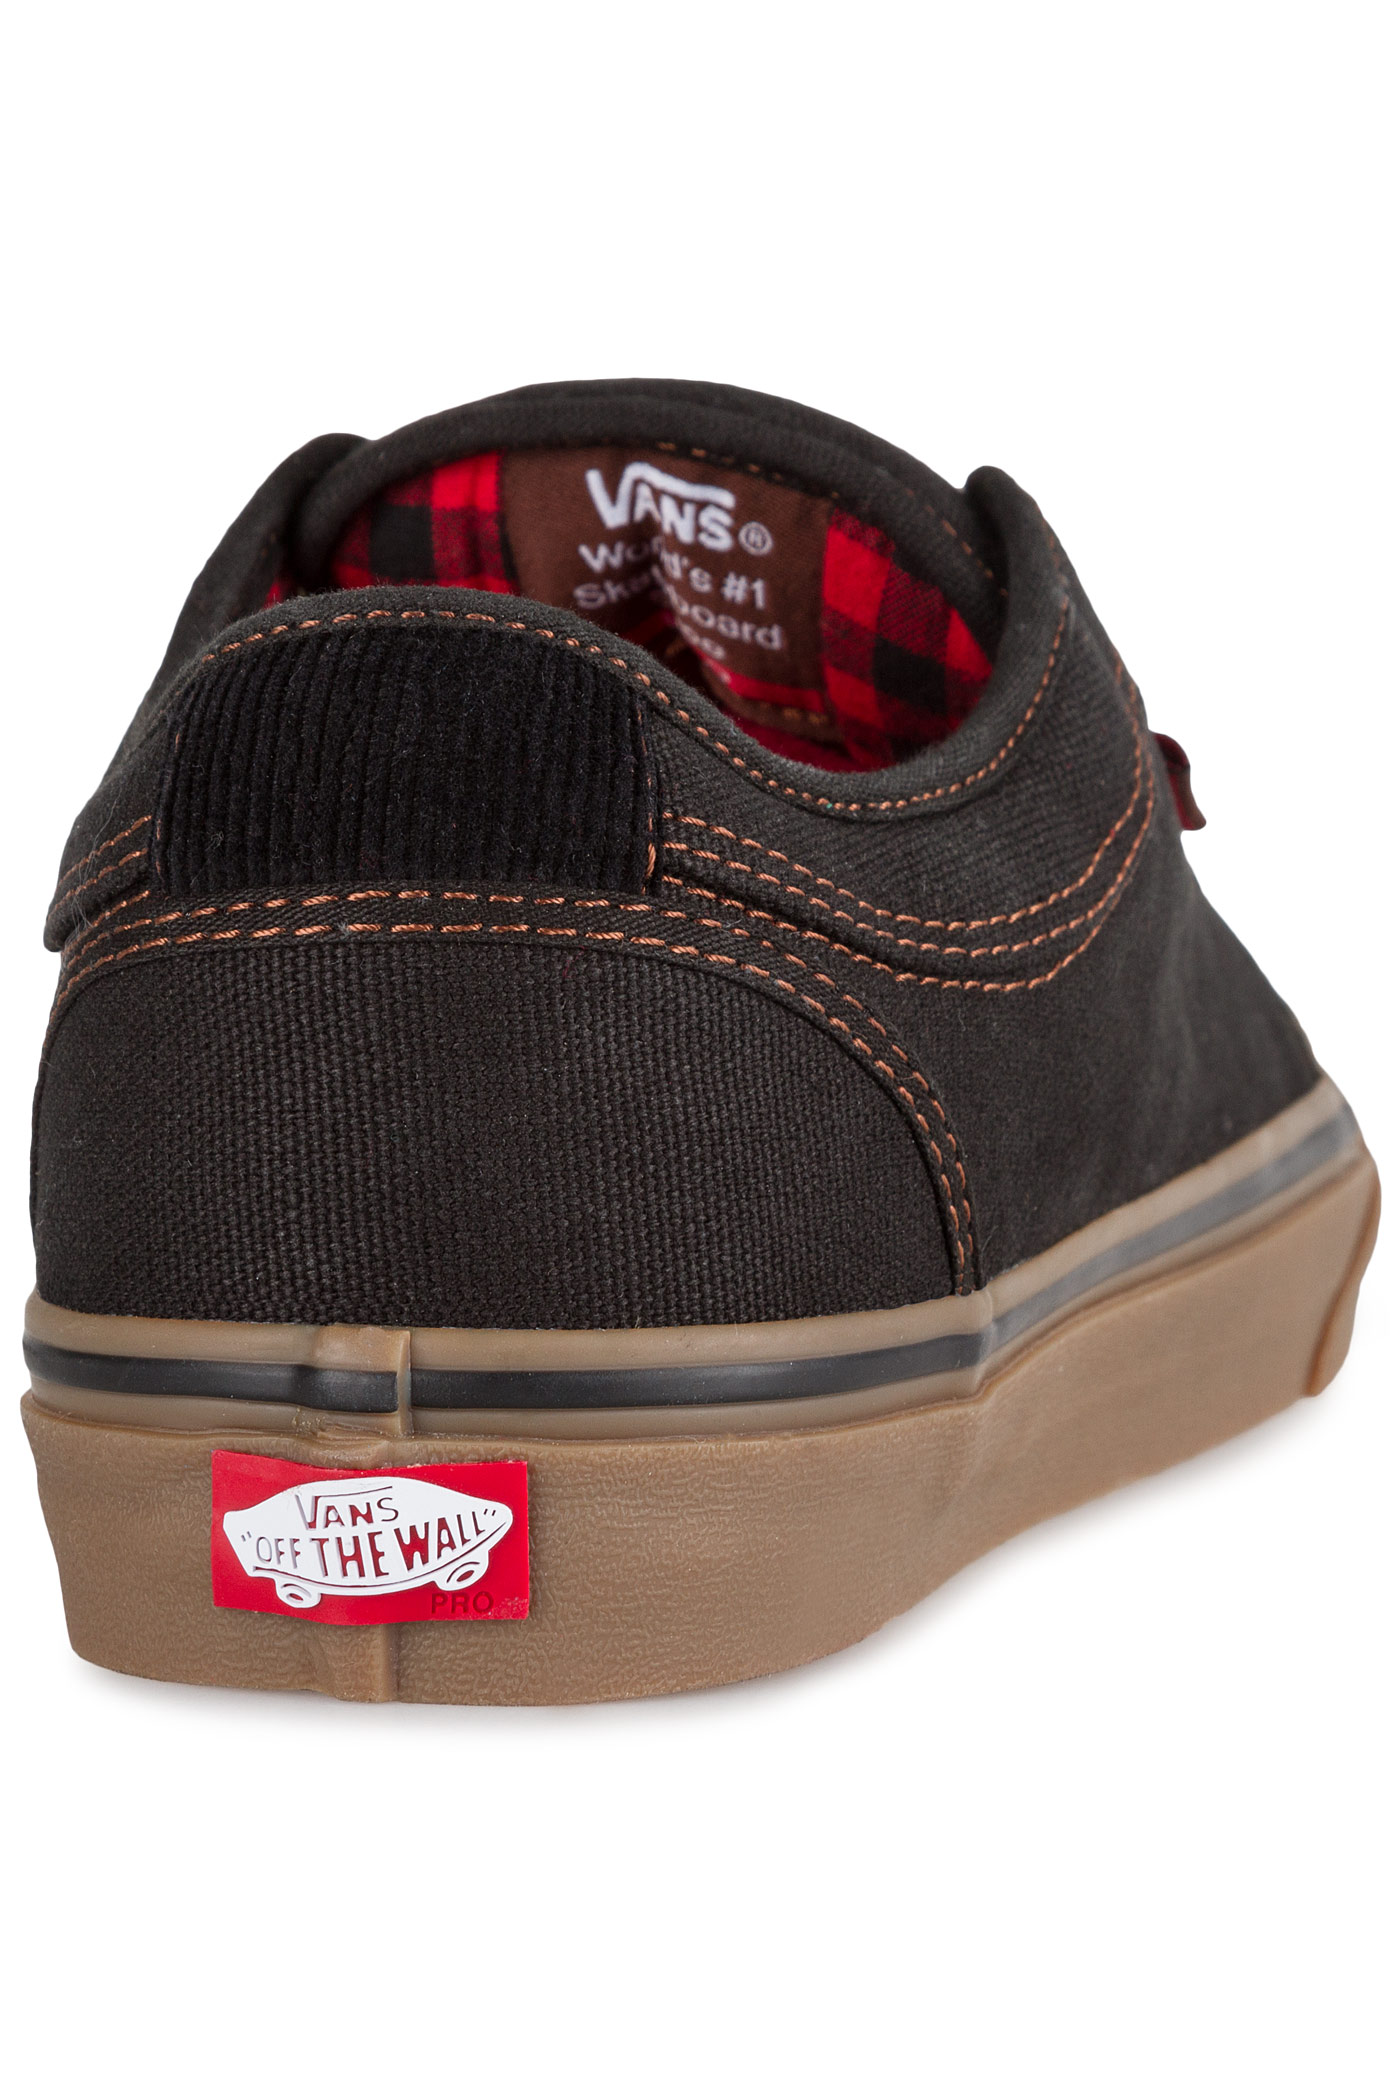 63188a6177 Vans Chukka Low Shoe (buffalo plaid black gum) buy at skatedeluxe